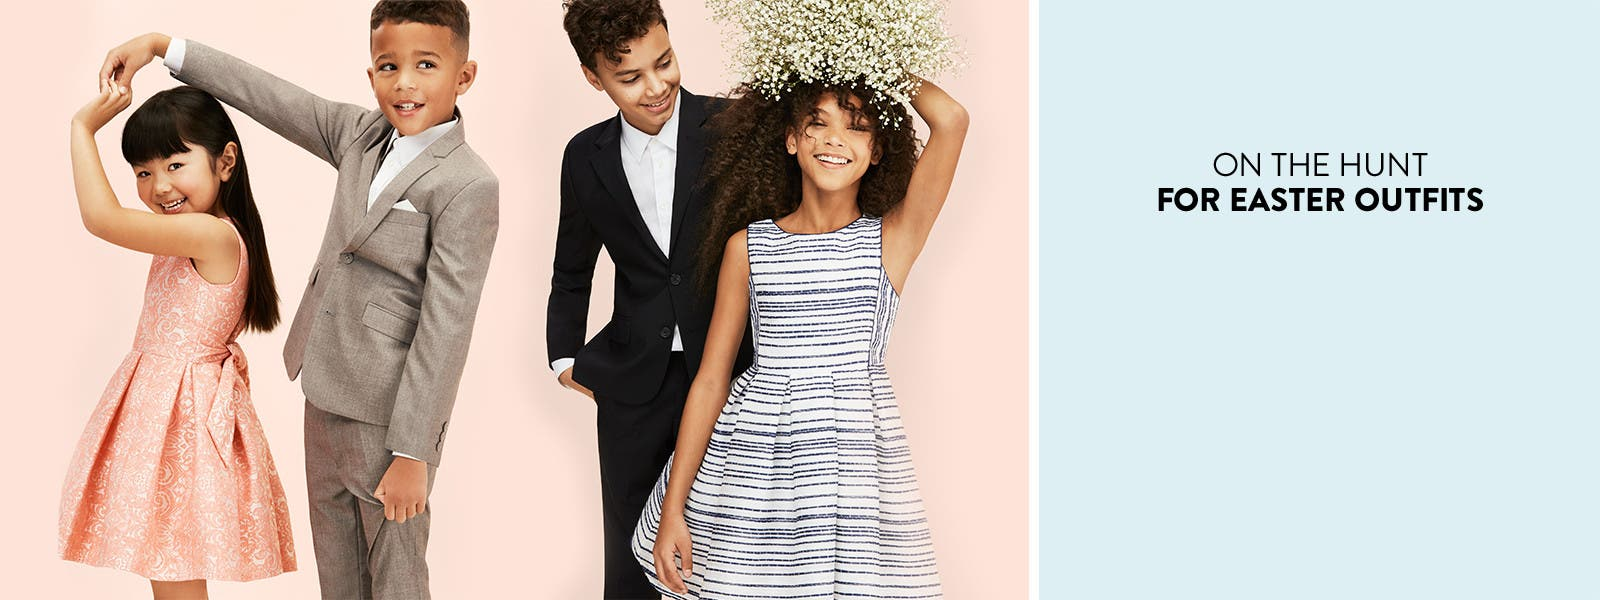 On the hunt for Easter outfits. Kids' clothing for Easter, parties and other special occasions.